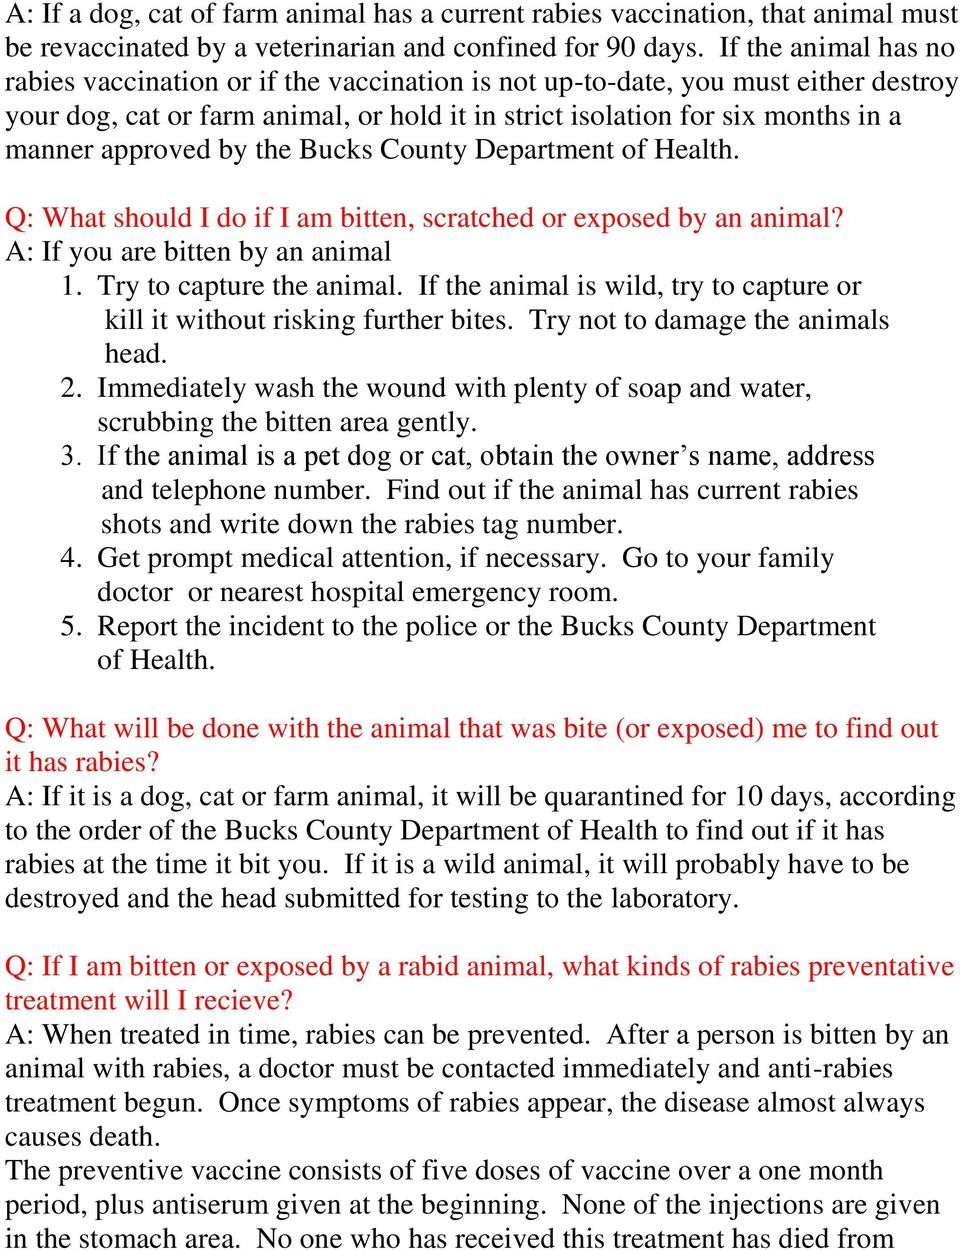 approved by the Bucks County Department of Health. Q: What should I do if I am bitten, scratched or exposed by an animal? A: If you are bitten by an animal 1. Try to capture the animal.